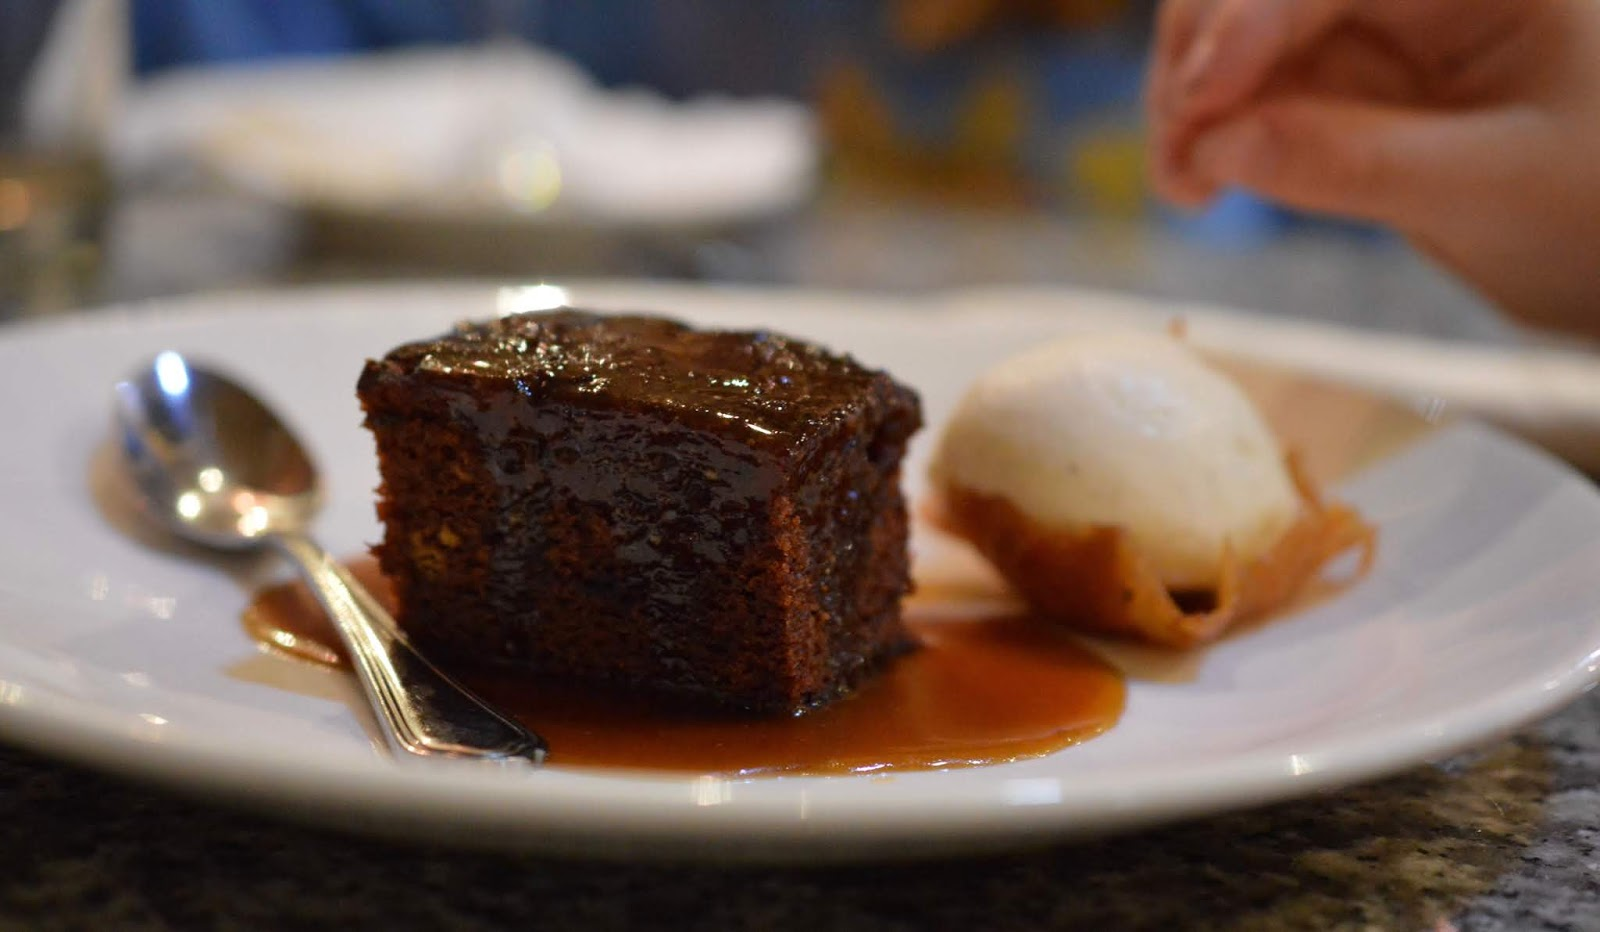 10 Reasons to Stay at Matfen Hall in Northumberland with Kids  - sticky toffee pudding